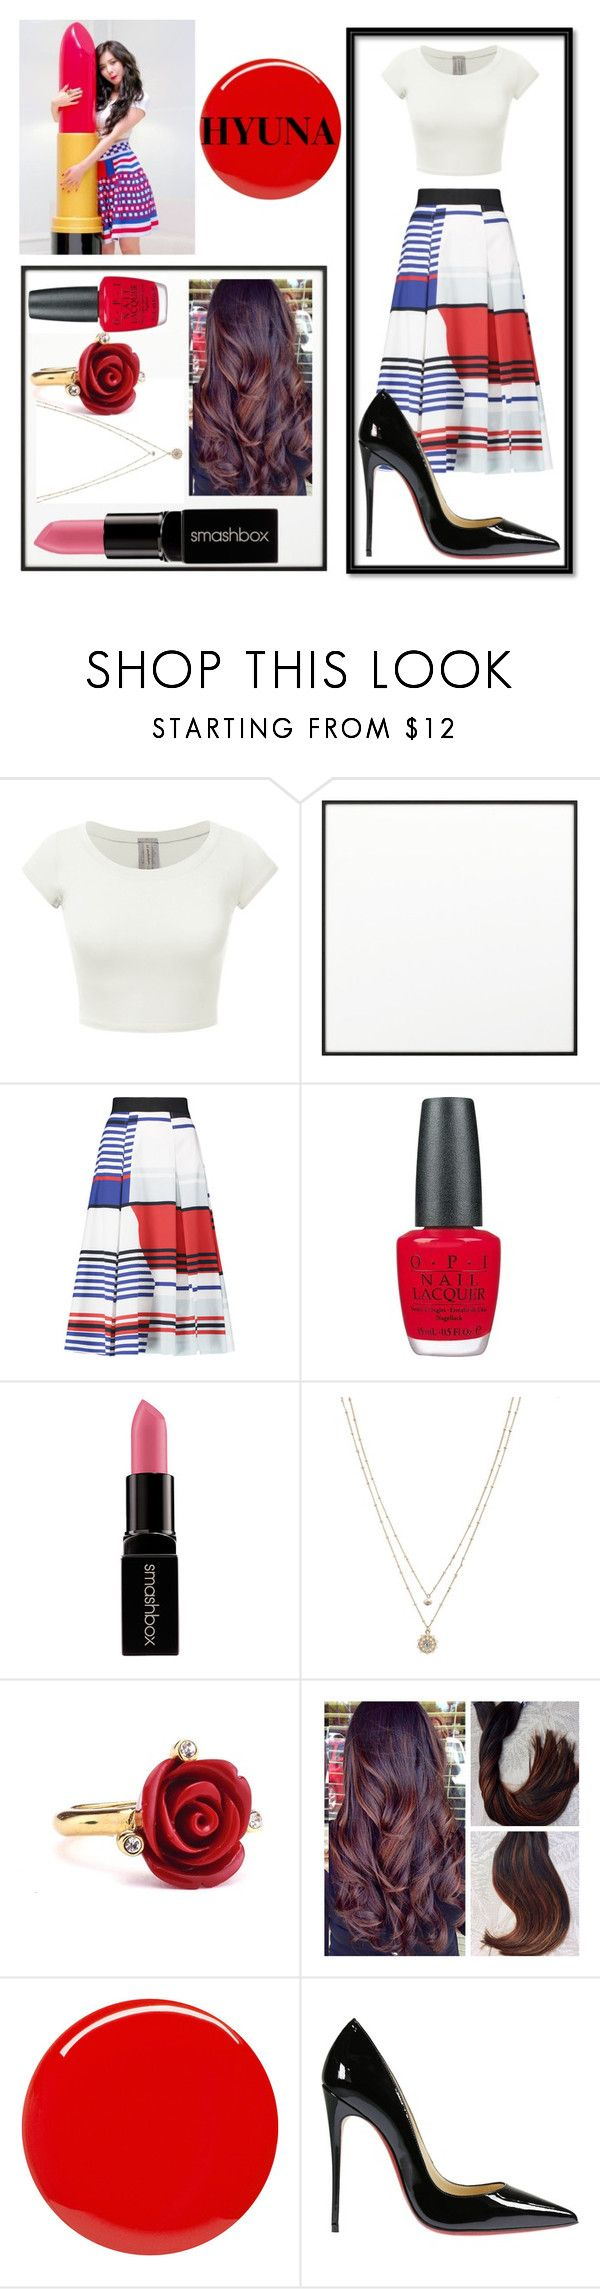 """HYUNA:Red Inspired pt.1"" by loves-5sos ❤ liked on Polyvore featuring By Lassen, Milly, OPI, Smashbox, LC Lauren Conrad, Oscar de la Renta, Yves Saint Laurent and Christian Louboutin"